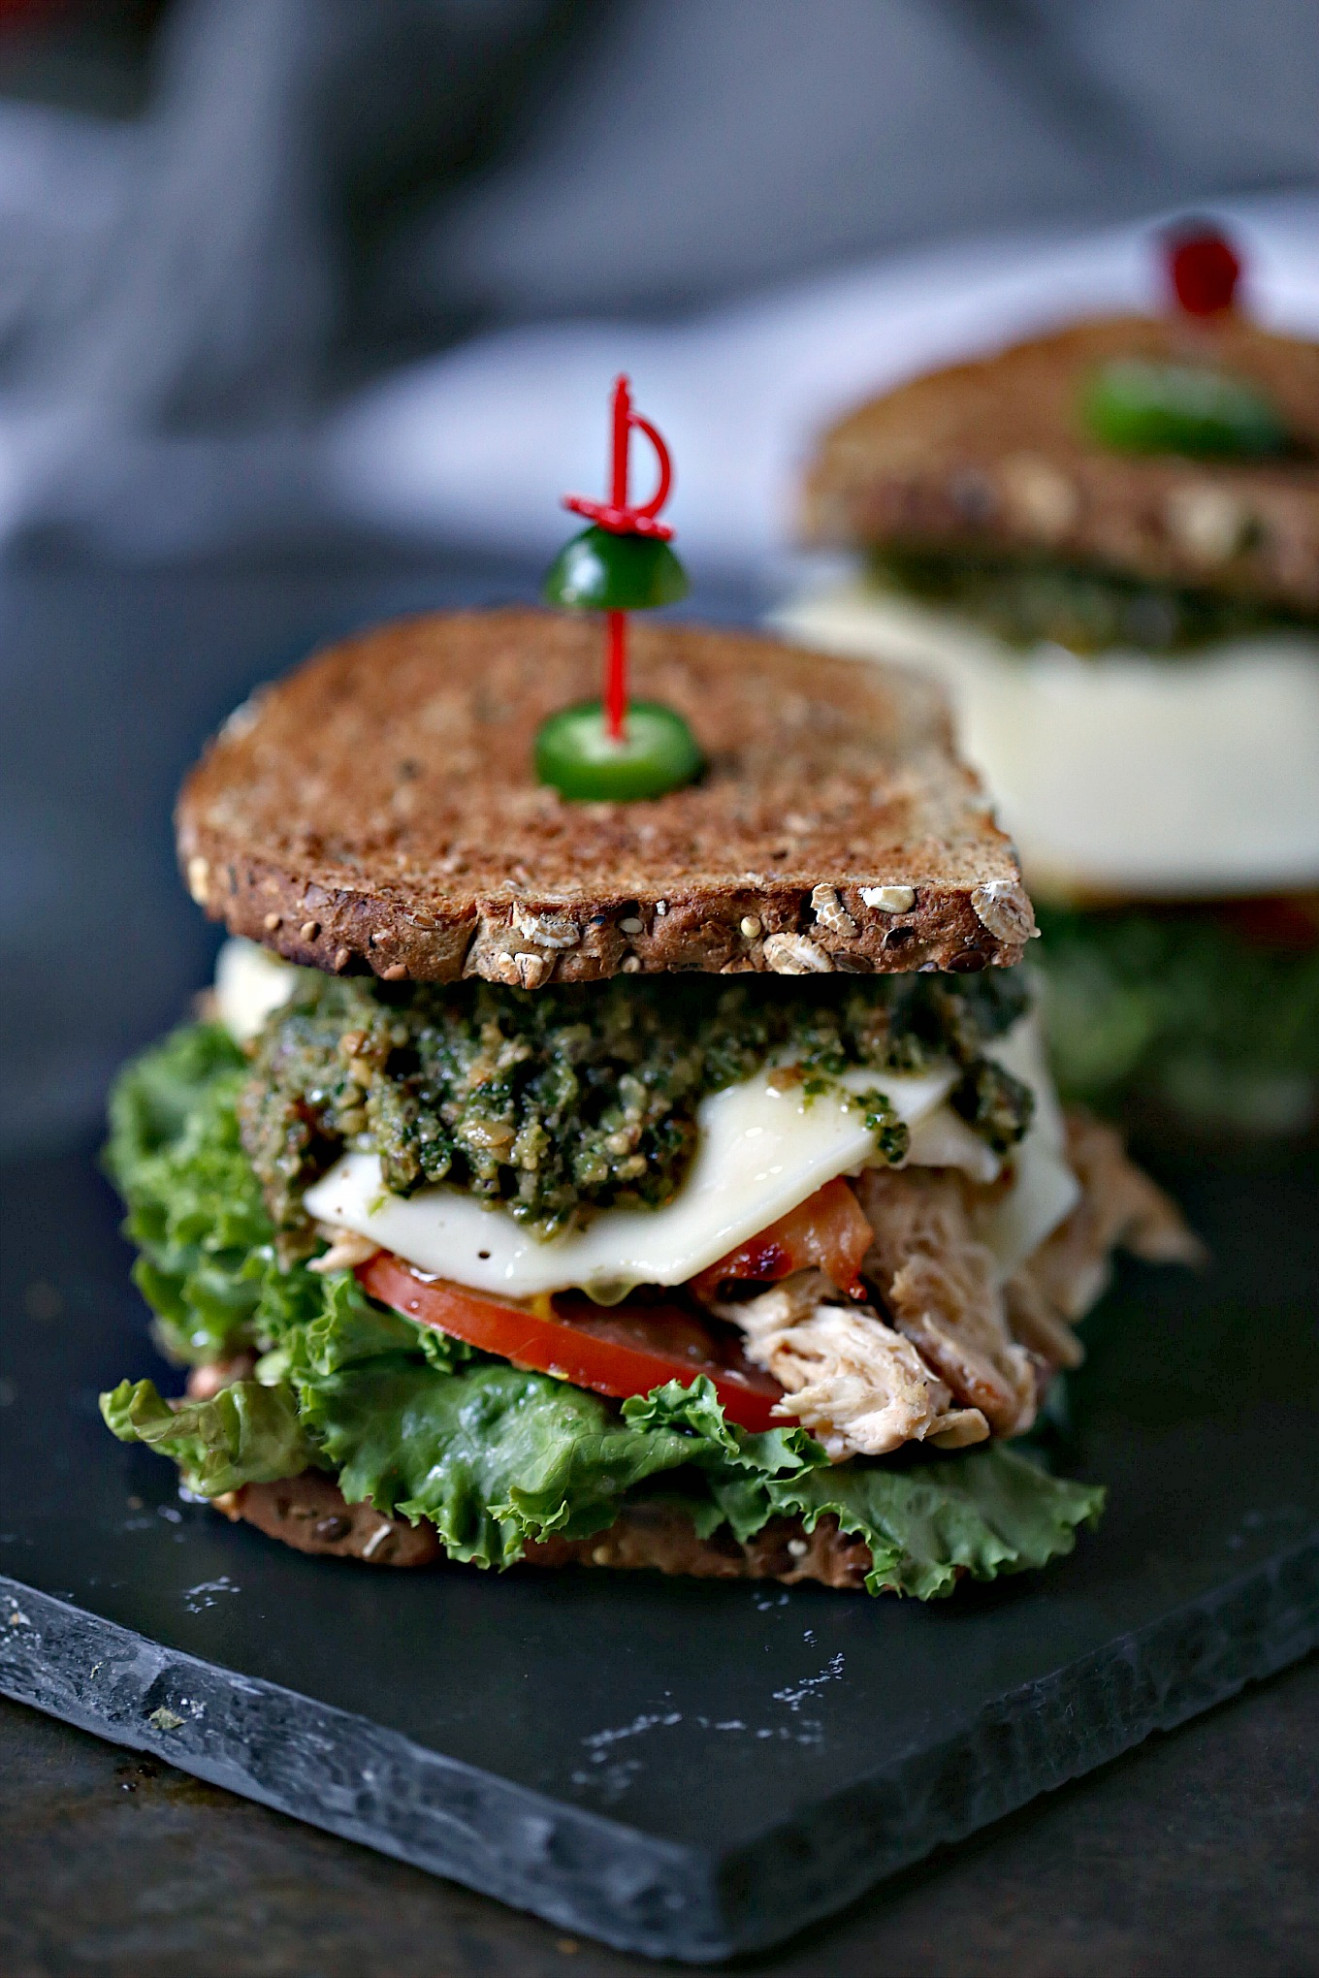 Grilled Chicken Sandwich with Basil Pesto - recipes with grilled chicken